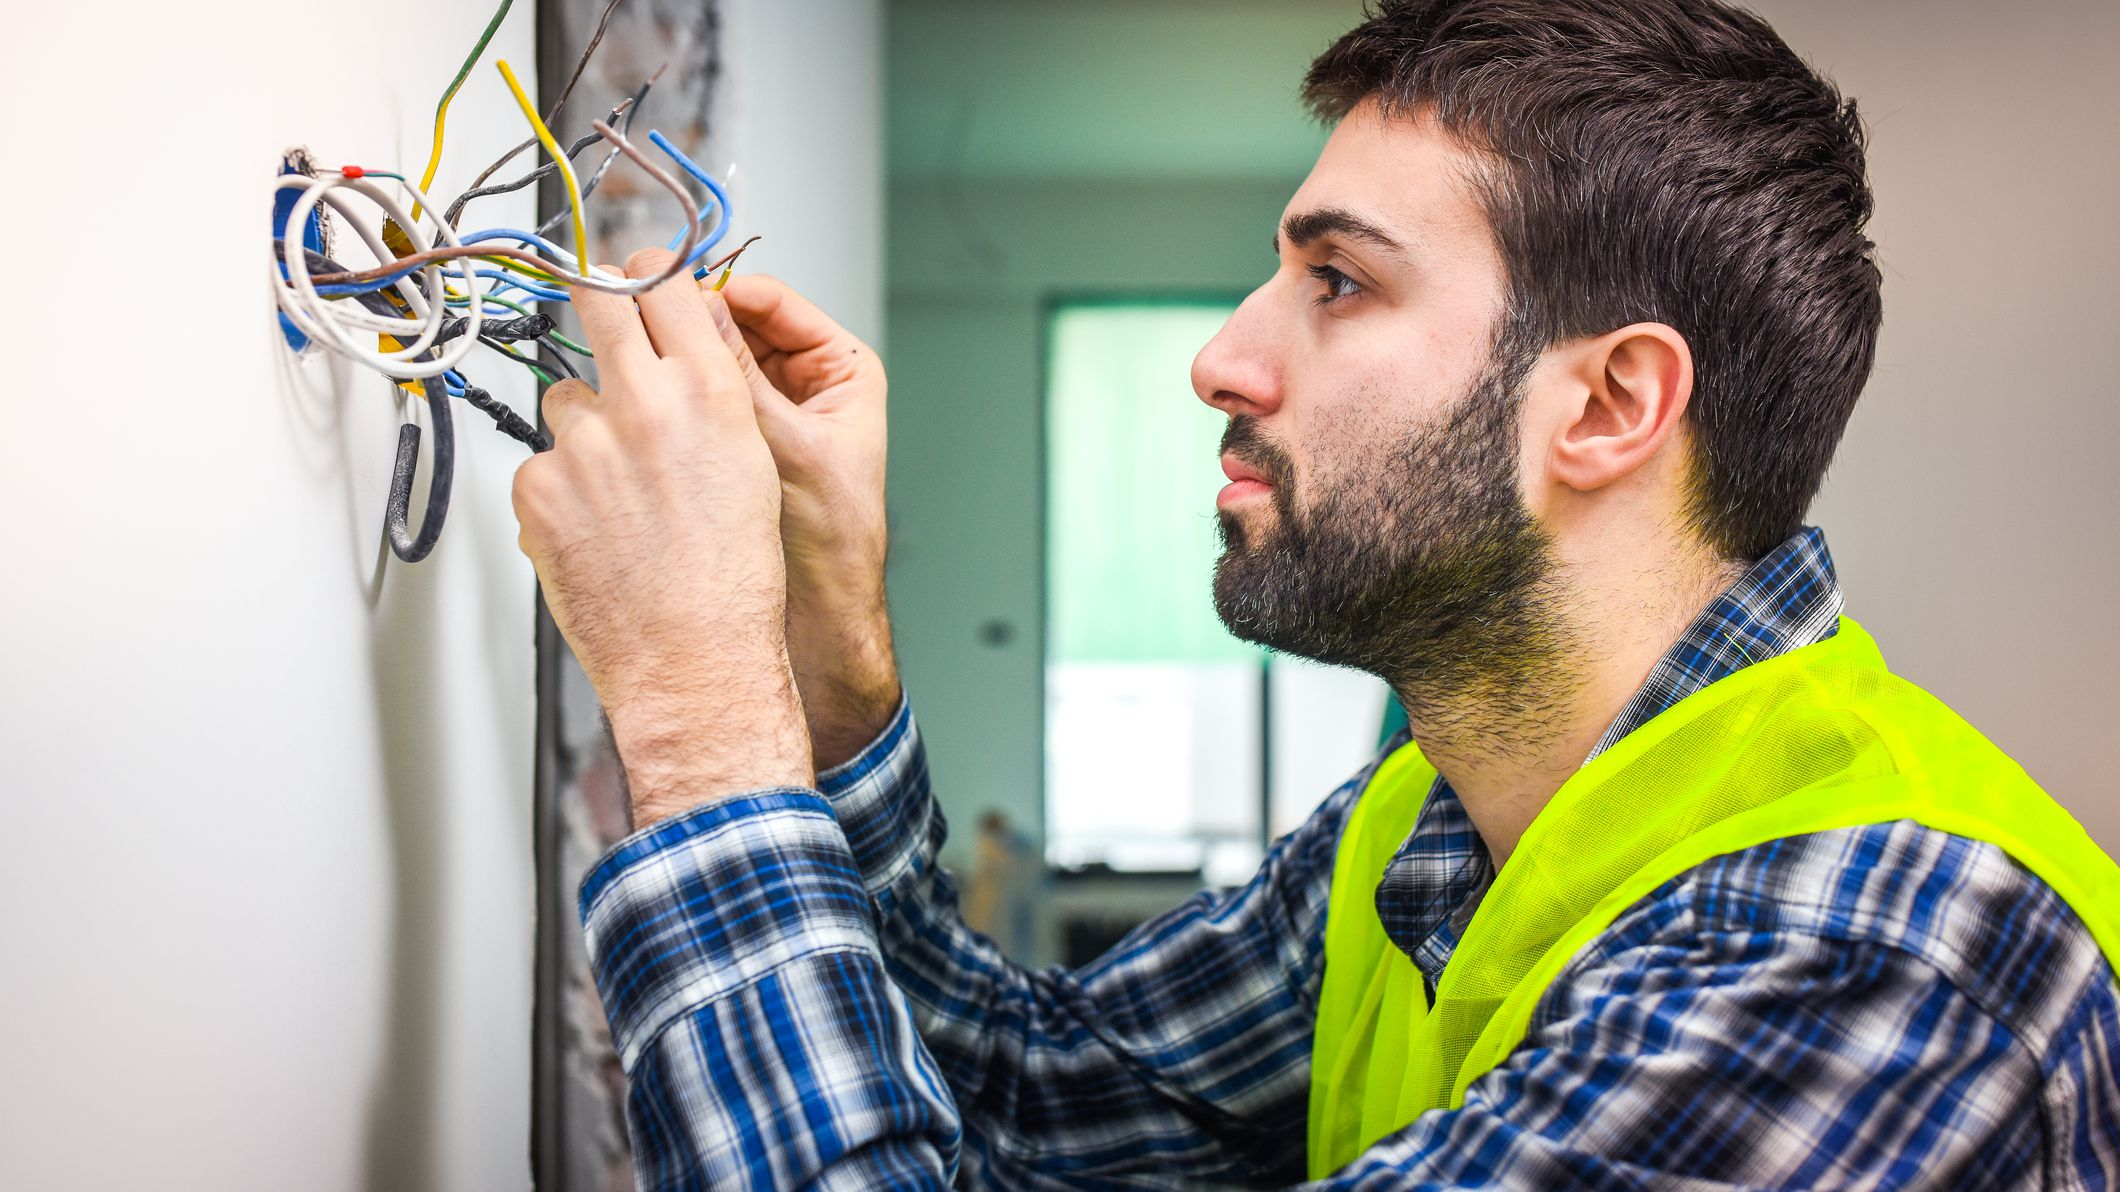 check-exposed-wires 5 Things You Can Do to Check Your Electrical Safety at Home